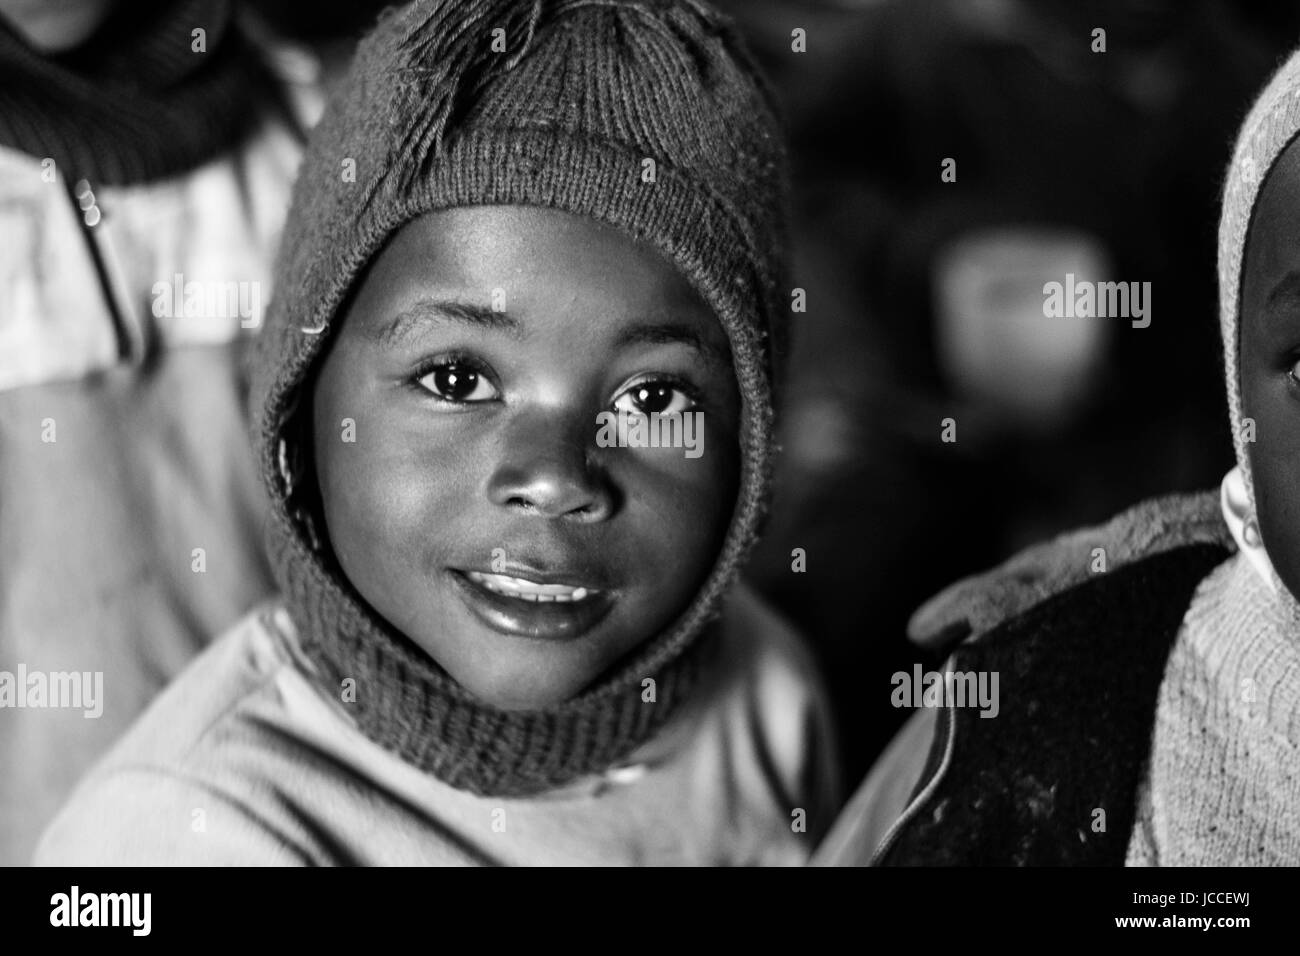 Portrait of a child in Africa - Stock Image